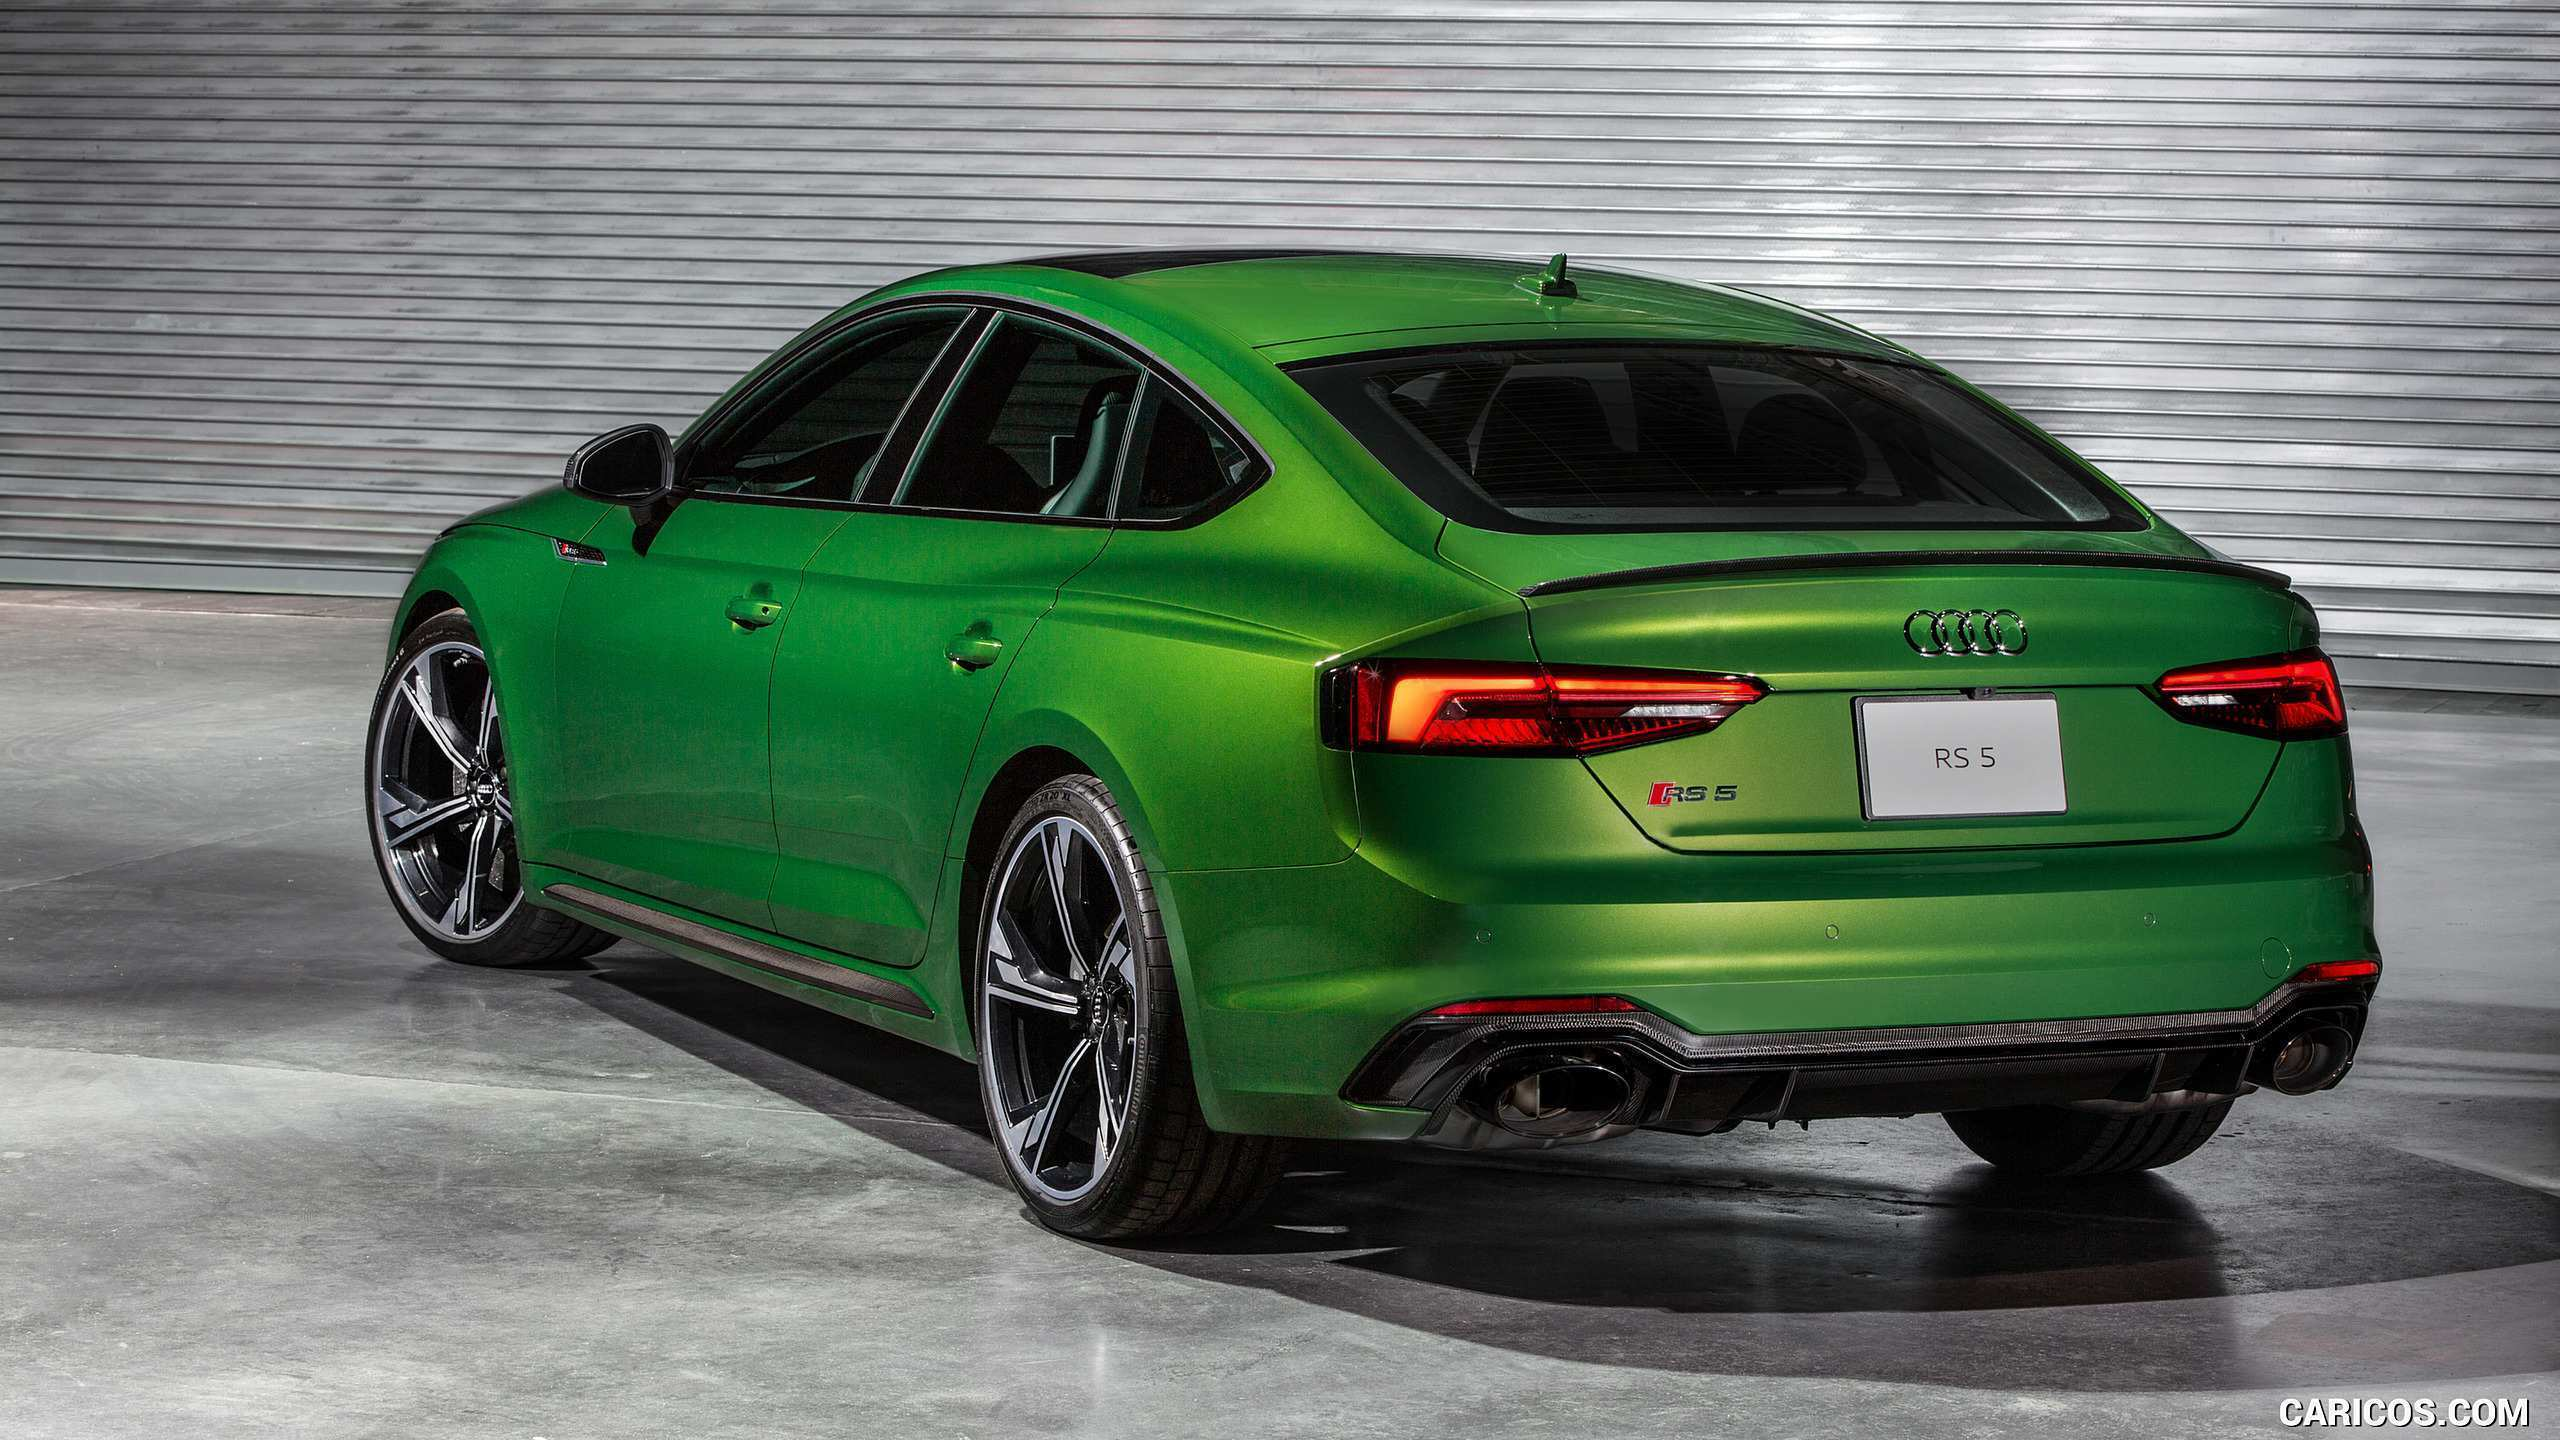 95 The 2019 Audi Green Images for 2019 Audi Green